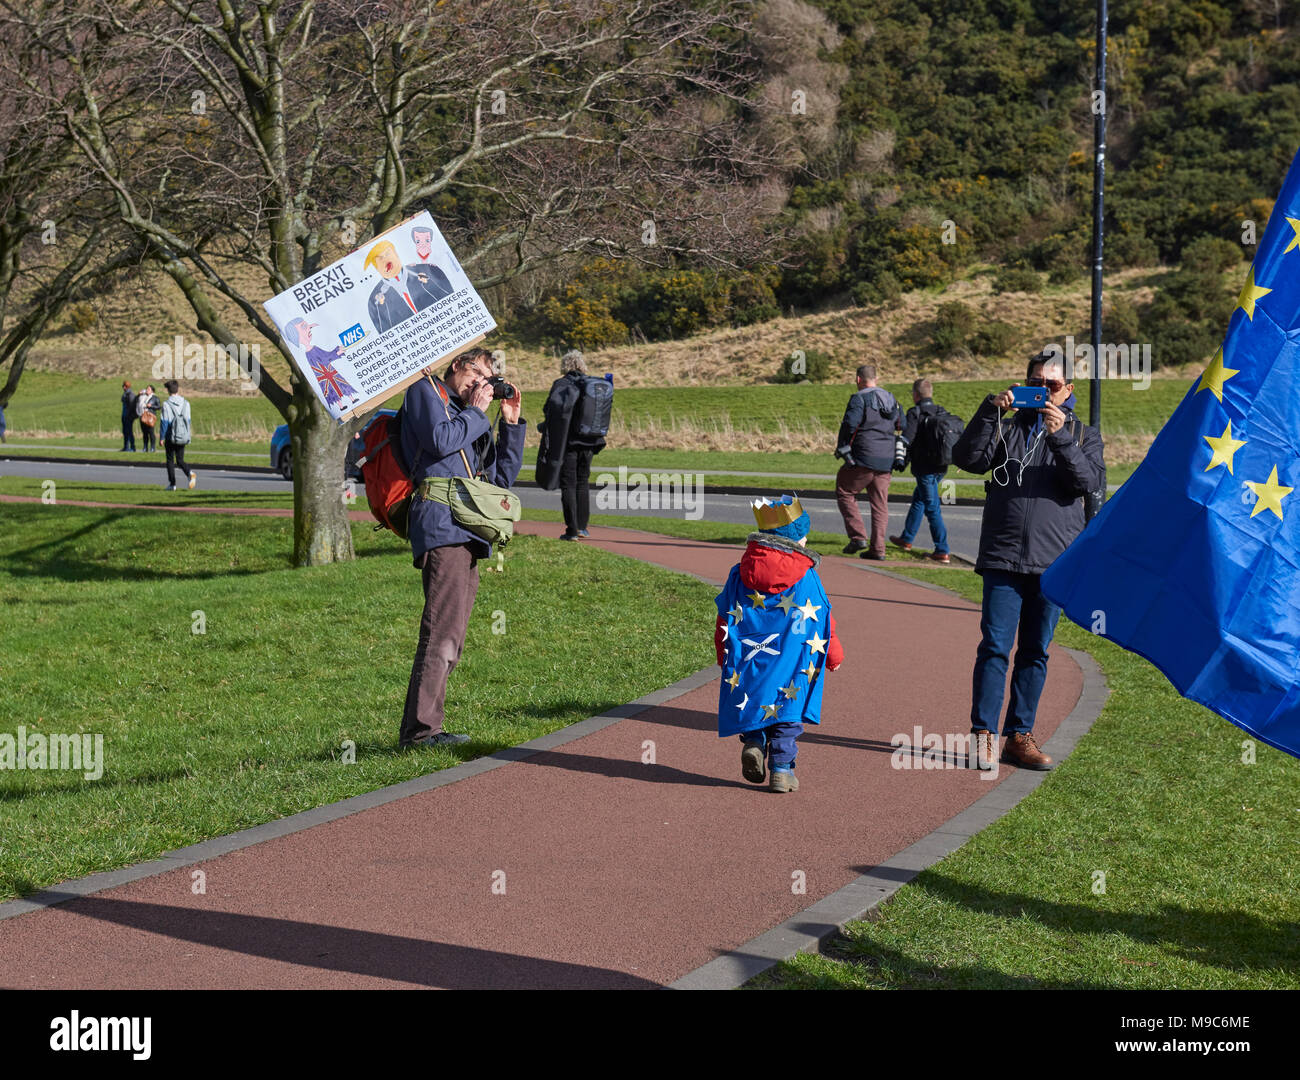 Edinburgh, Scotland, 24th March 2018, Child Dressed up with European Flag Cape at the March for Europe Demonstration in Edinburgh, UK. Credit JJ Walters/Alamy Live News - Stock Image